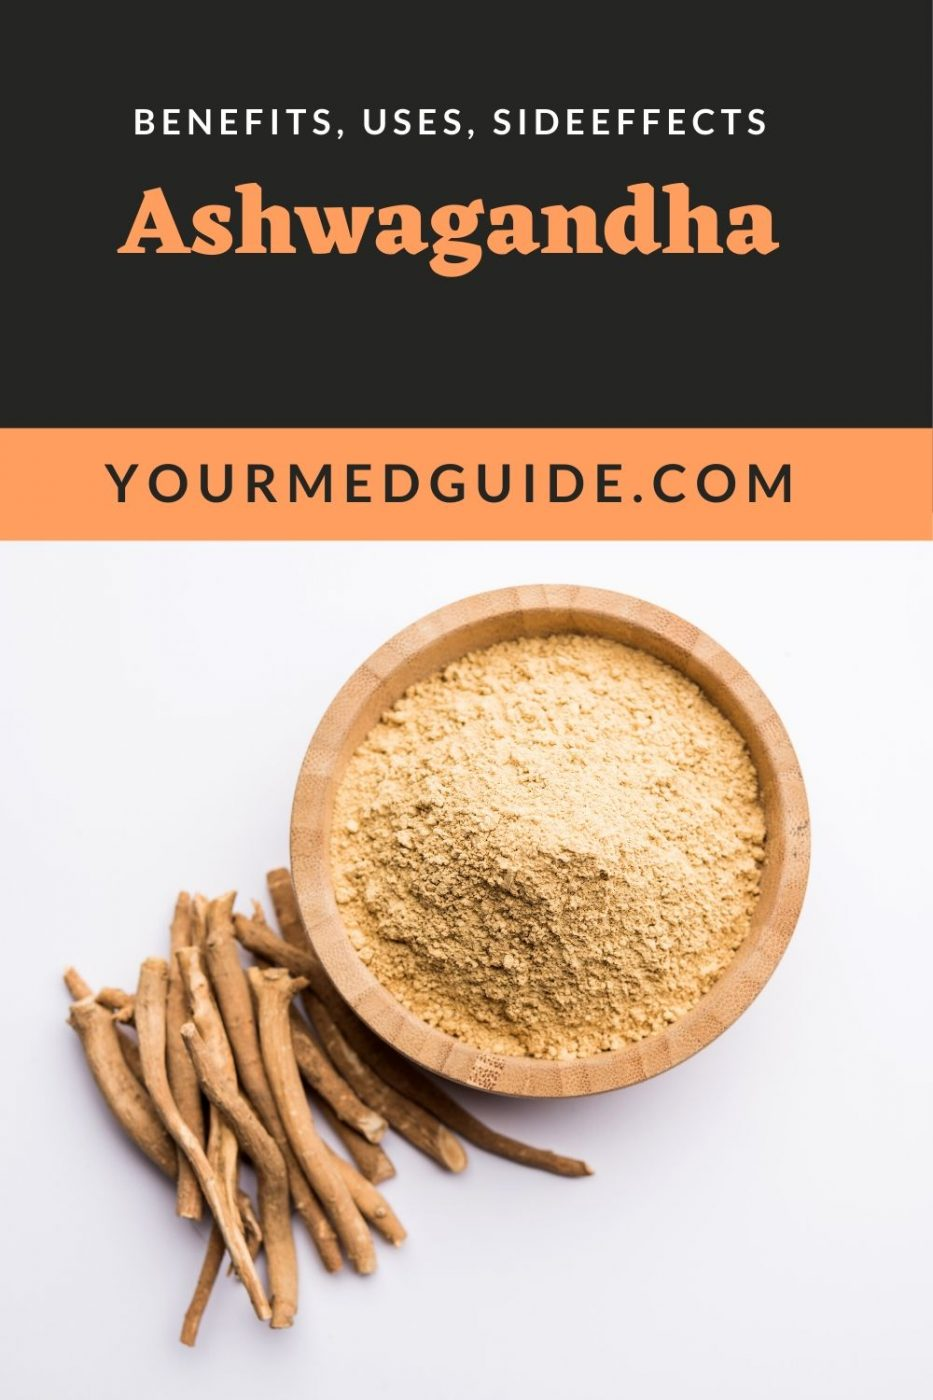 Ashwagandha benefits uses and sideeffects